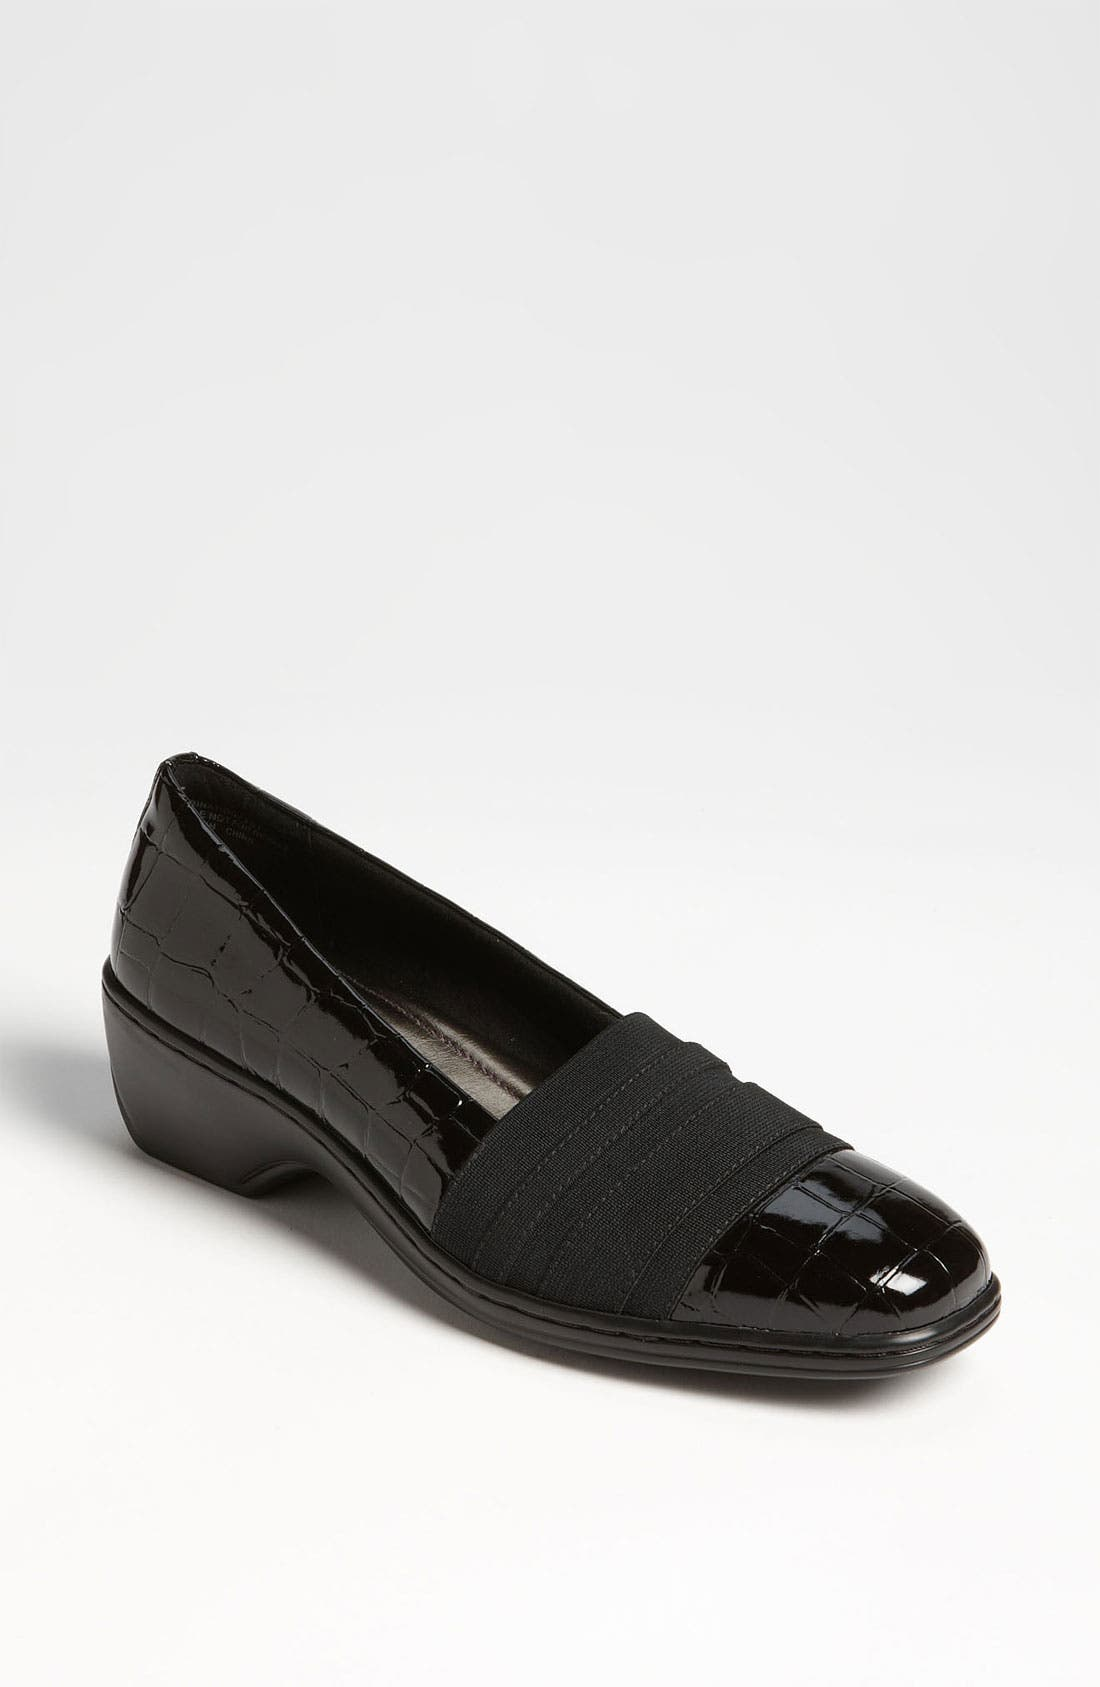 Alternate Image 1 Selected - Aravon 'Kasey' Slip-On